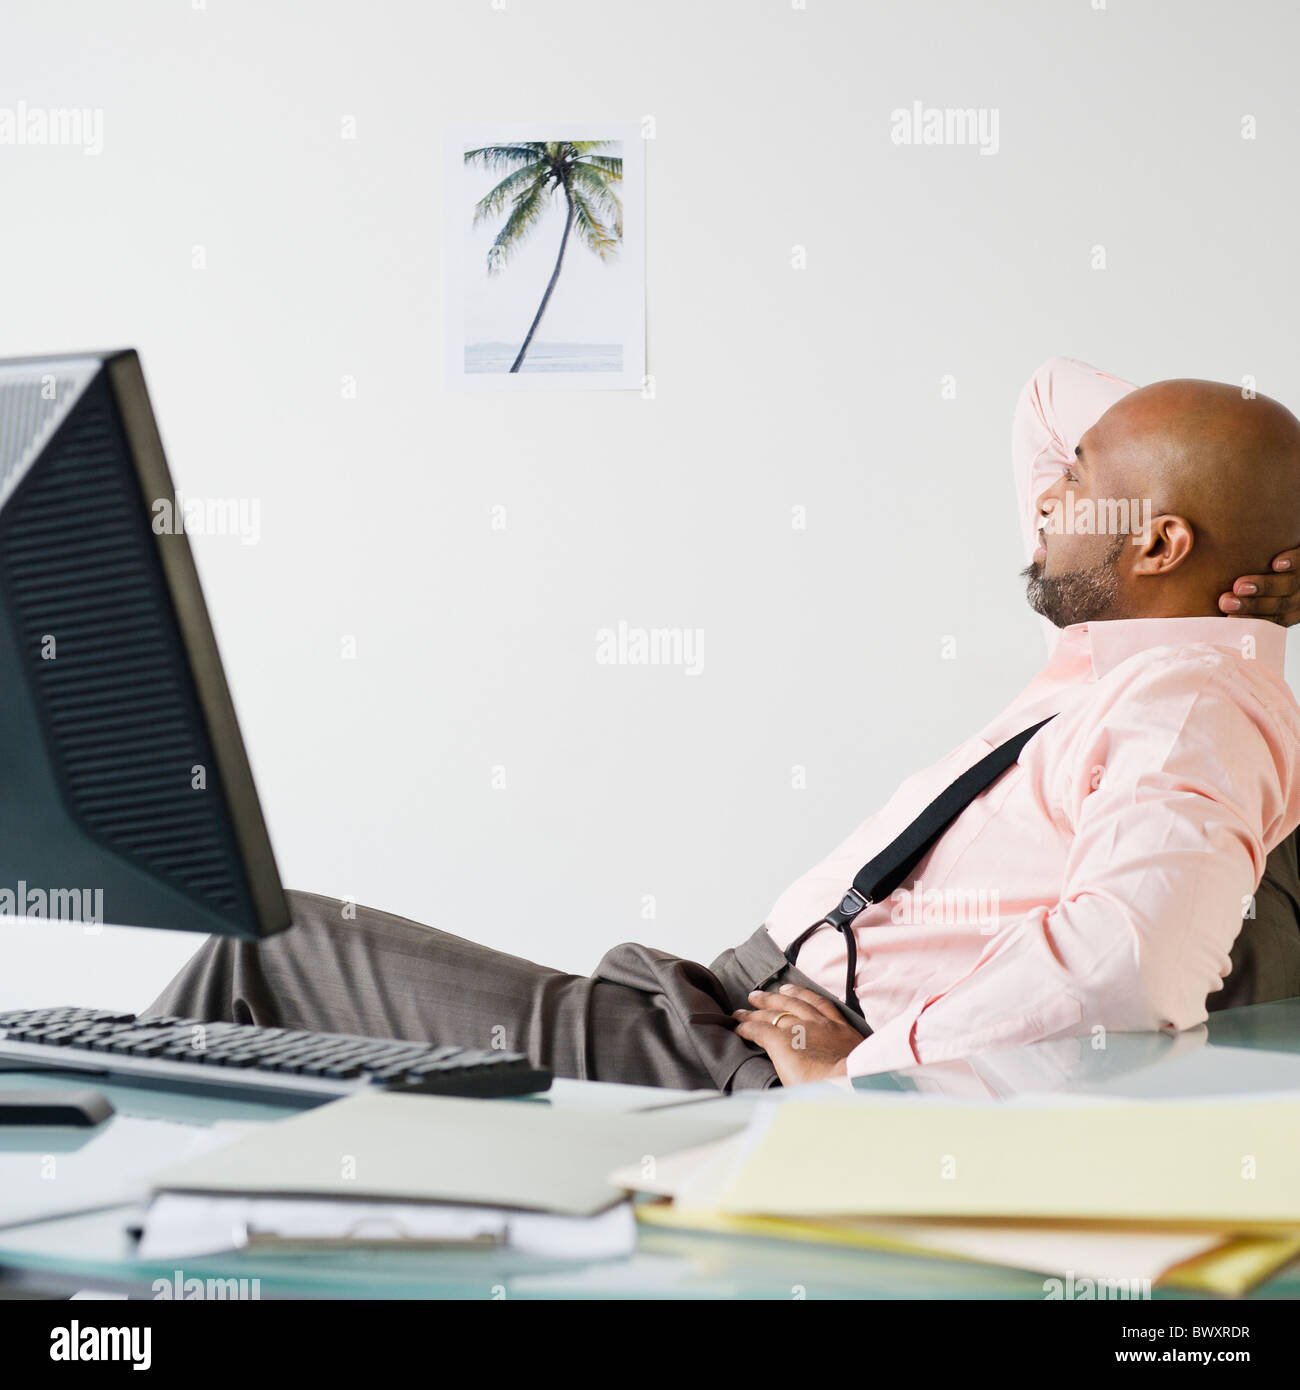 African American businessman looking at photo de palm tree Banque D'Images